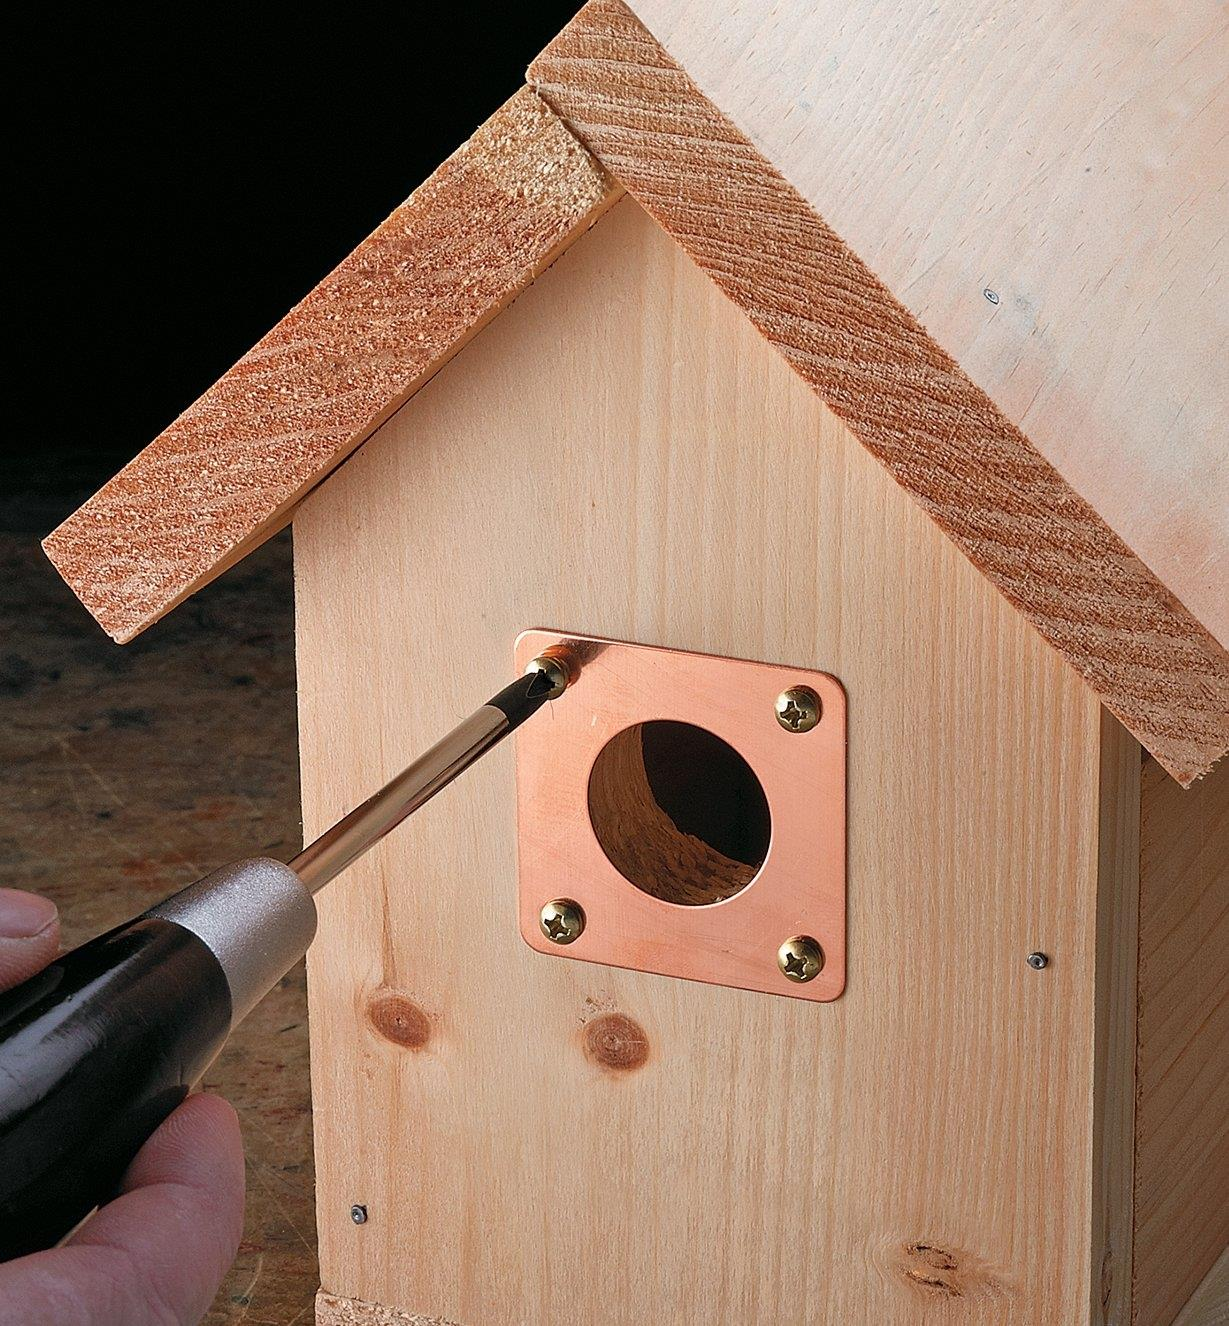 Using a screwdriver to install a portal protector on a birdhouse